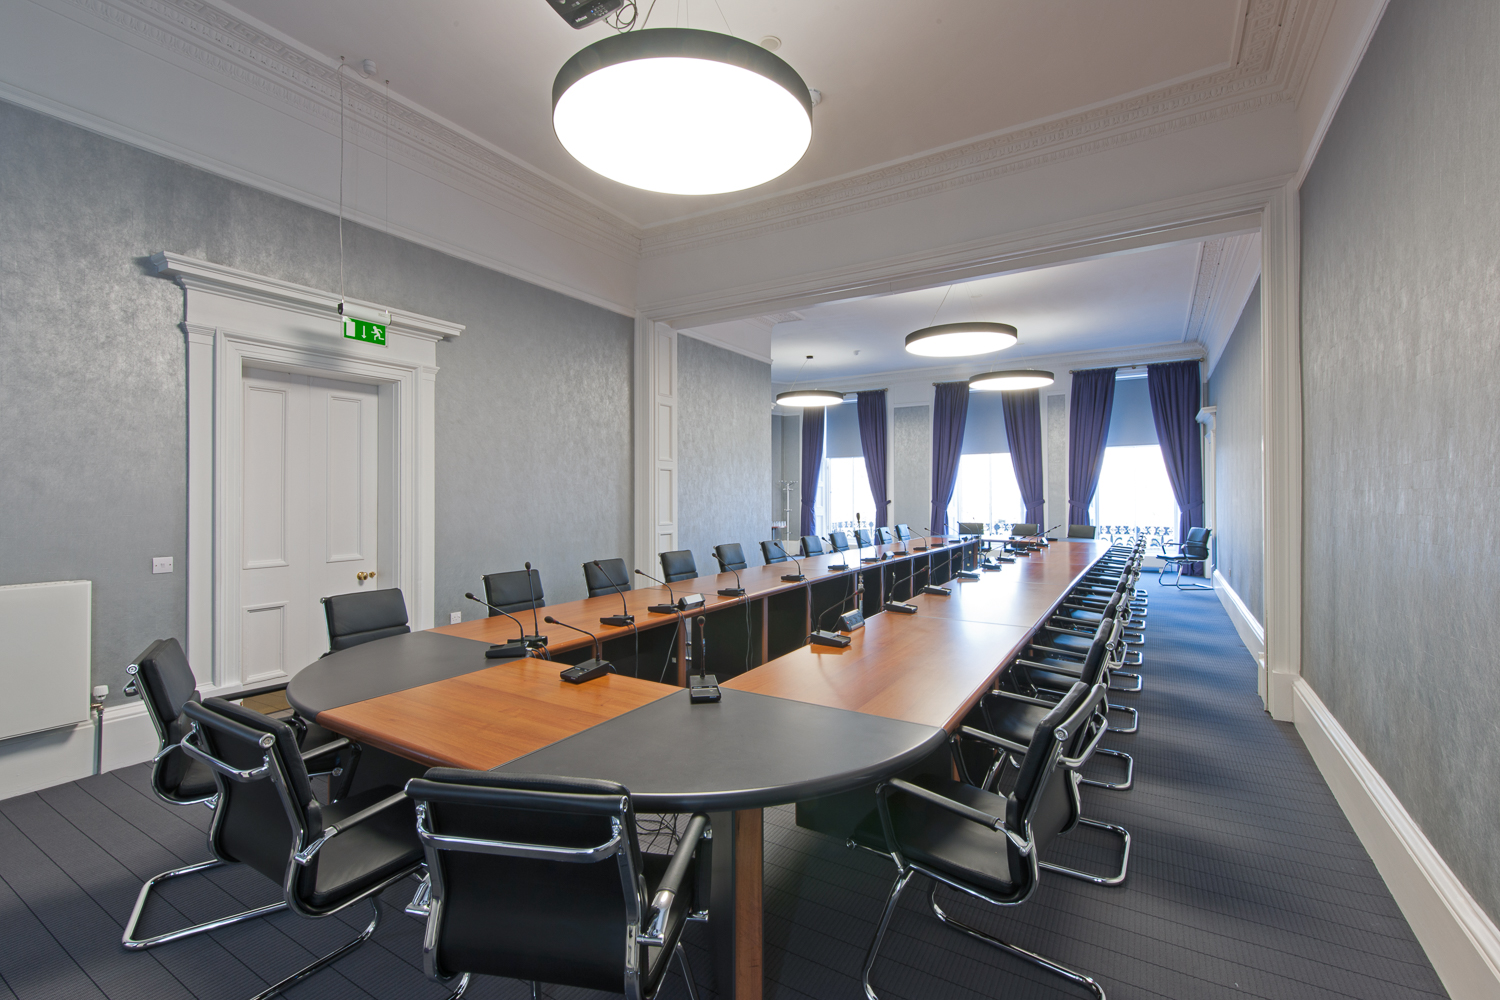 meeting room furniture edinburgh.jpg